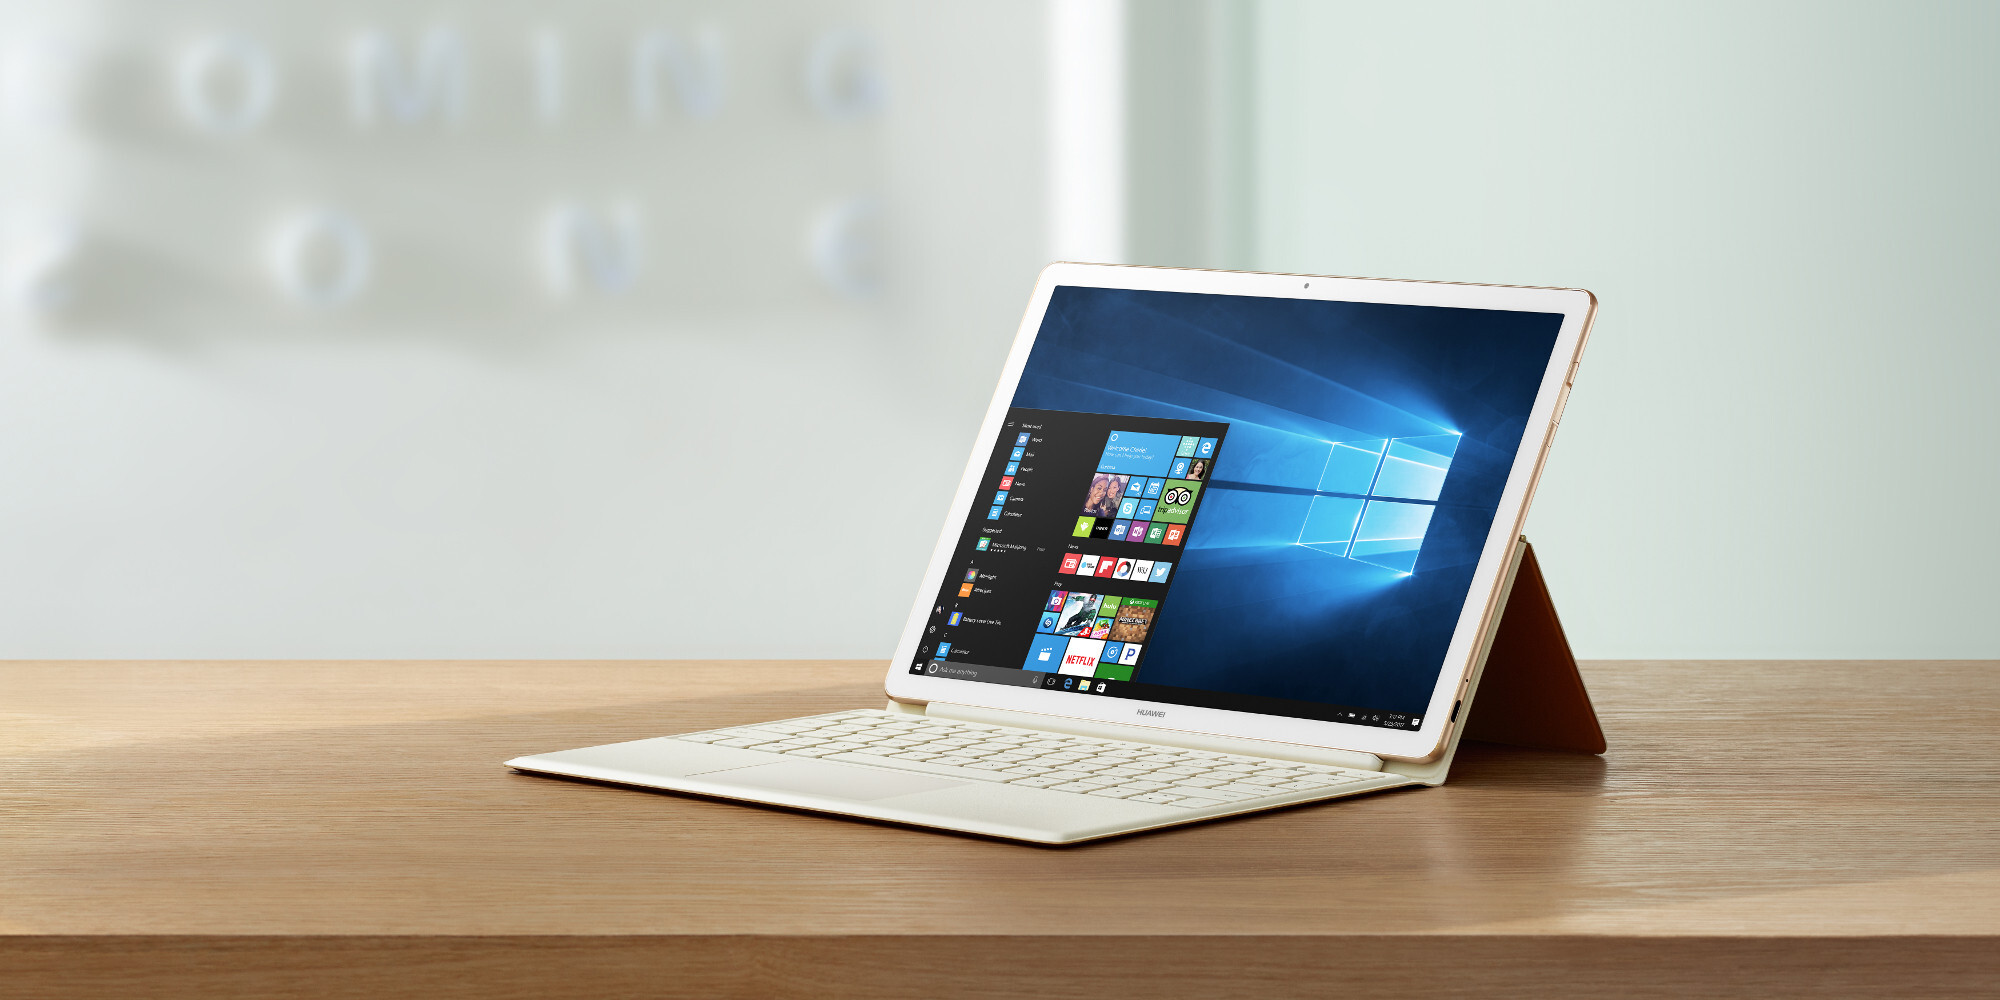 Huawei announces three new MateBooks, including the ultraportable MateBook X